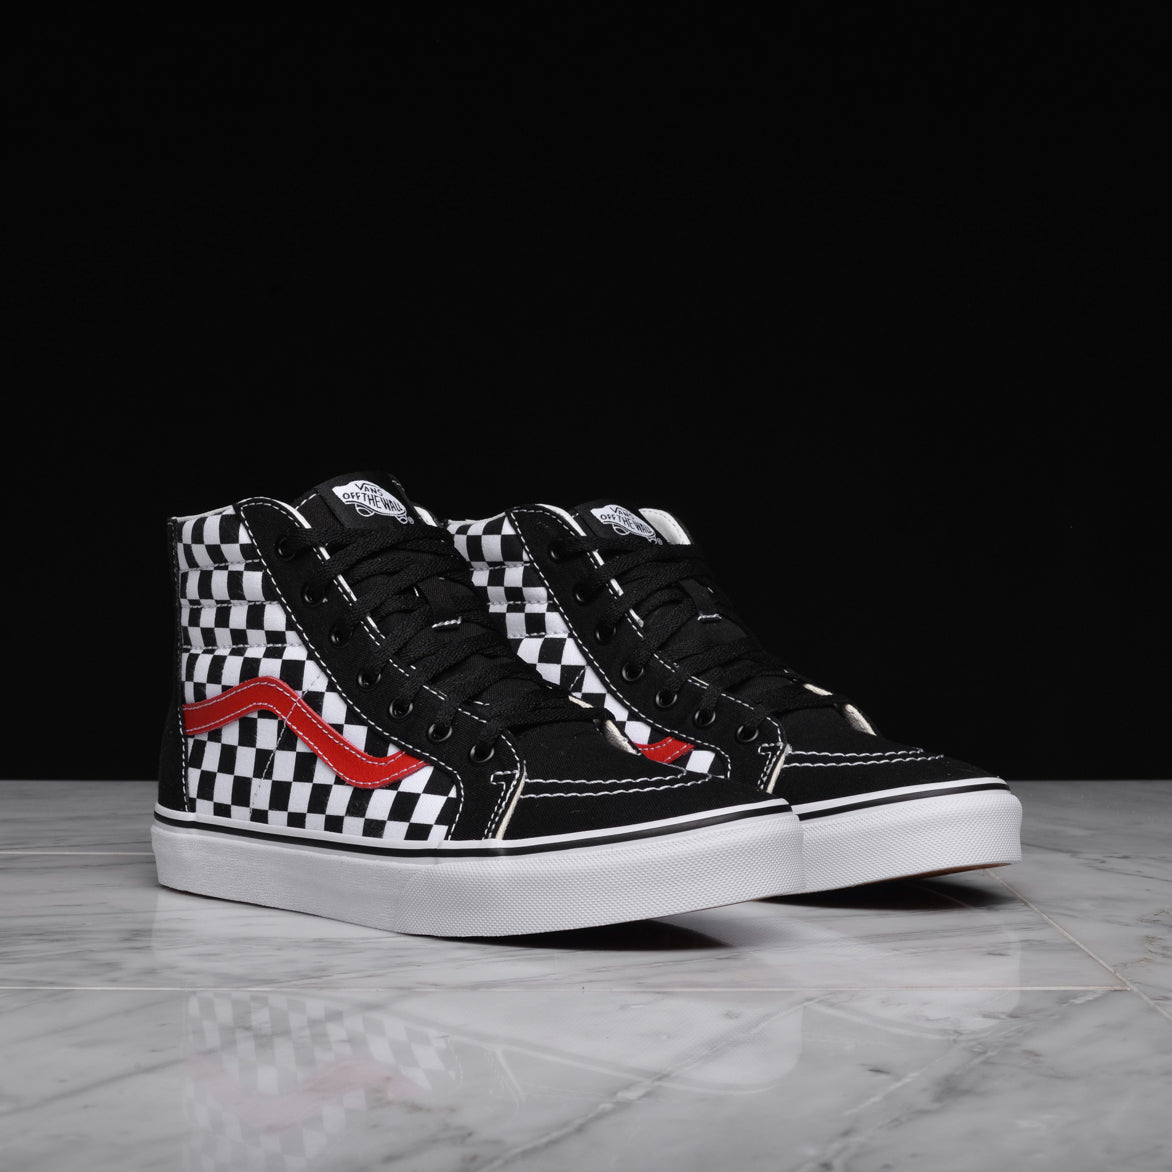 SK8-HI ZIP CHECKERBOARD (KIDS) - BLACK / RED / WHITE